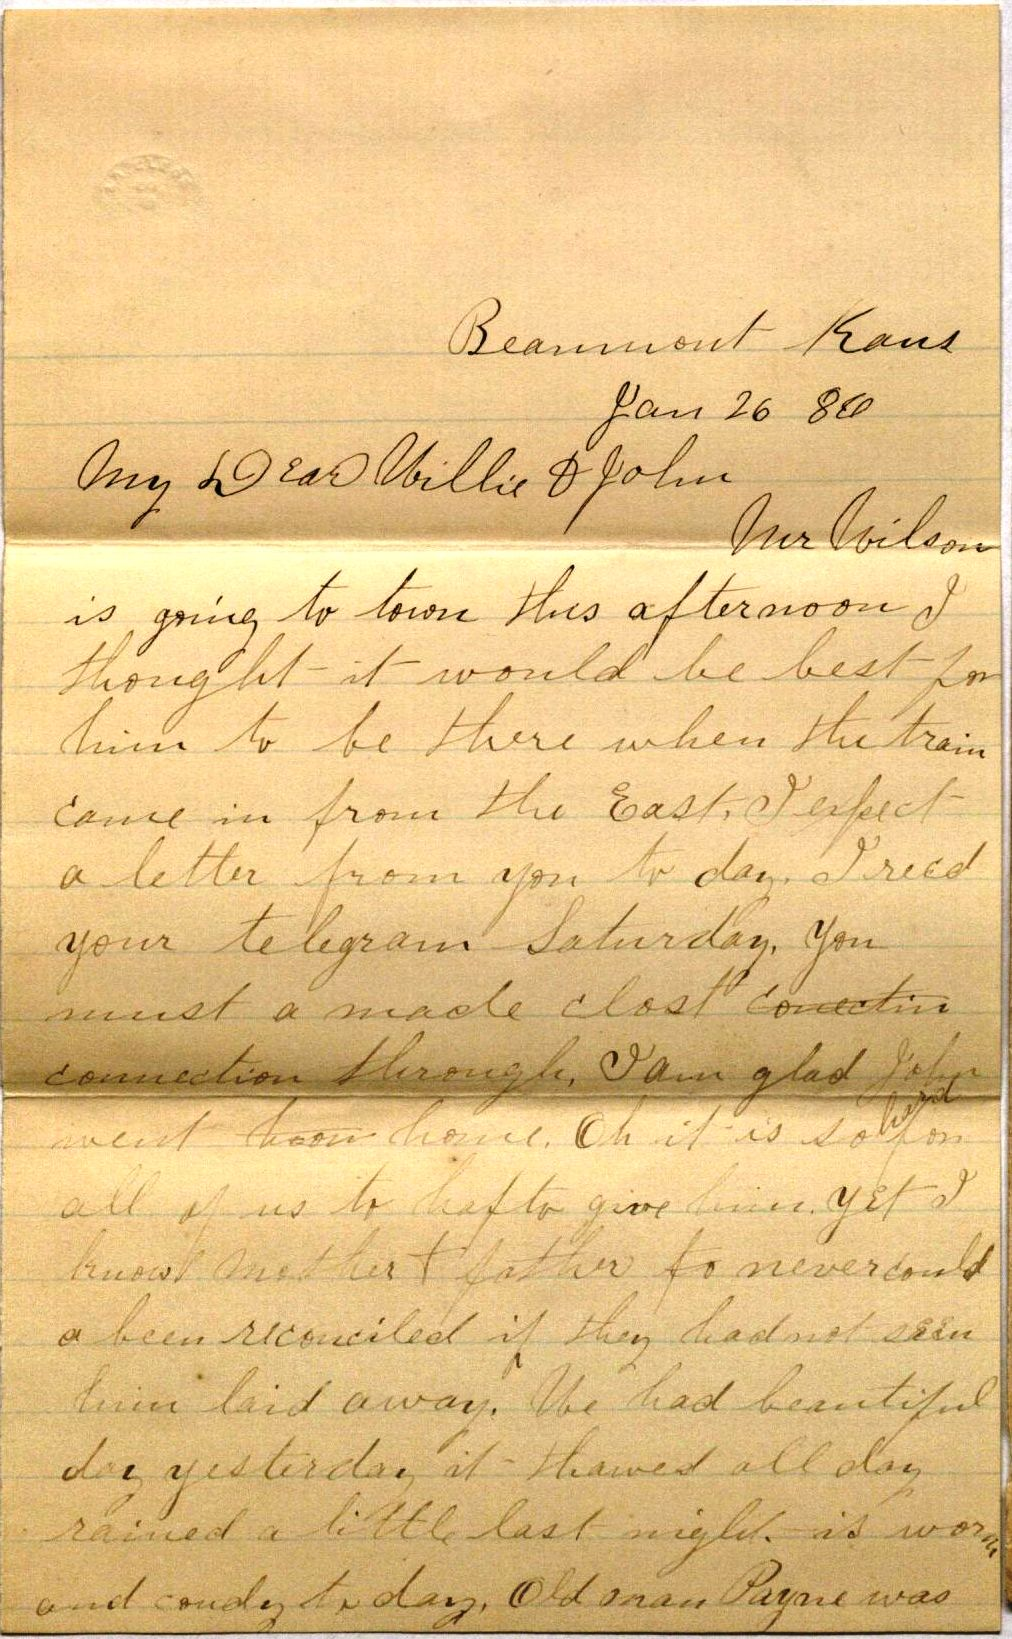 Image of Letter from Jennie Johnson to Will Johnson, January 26, 1886